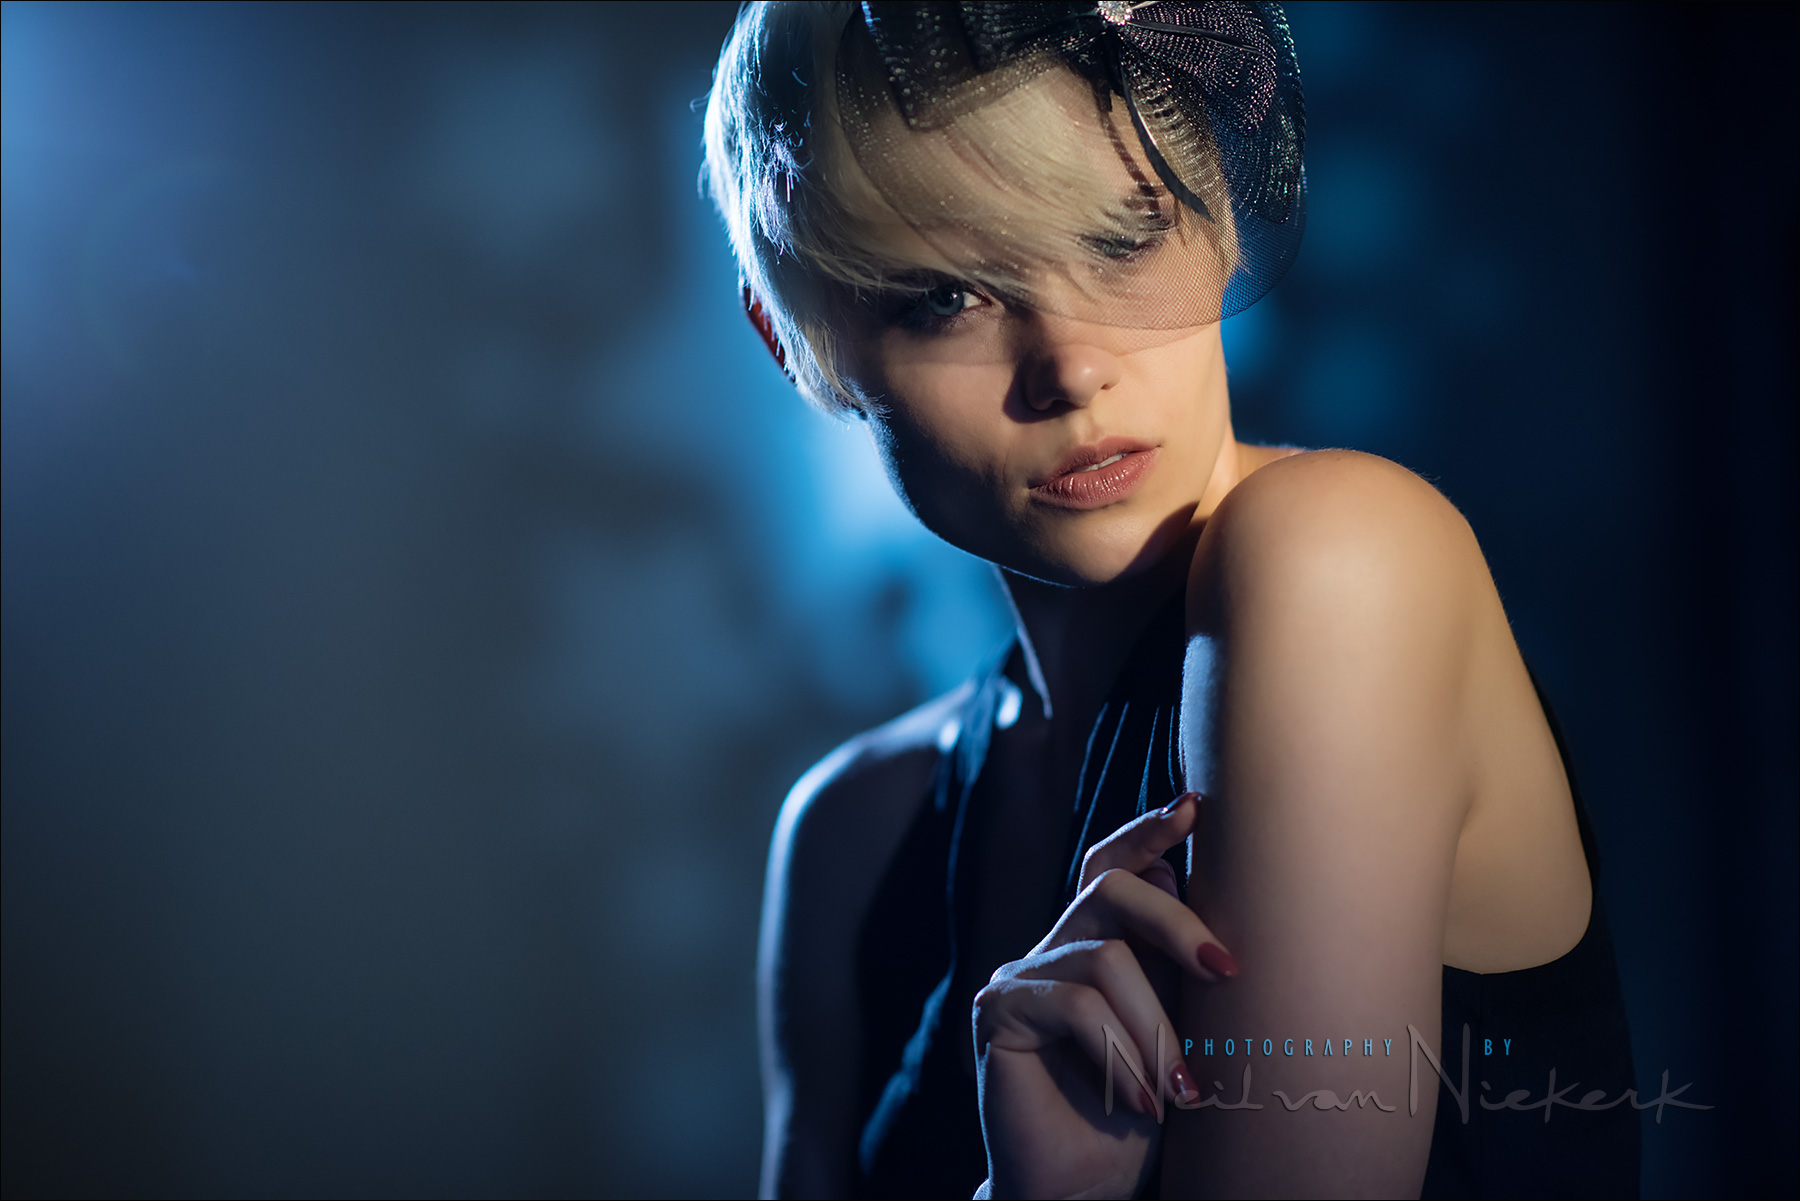 Dramatic Lighting Effects For Portrait Photography